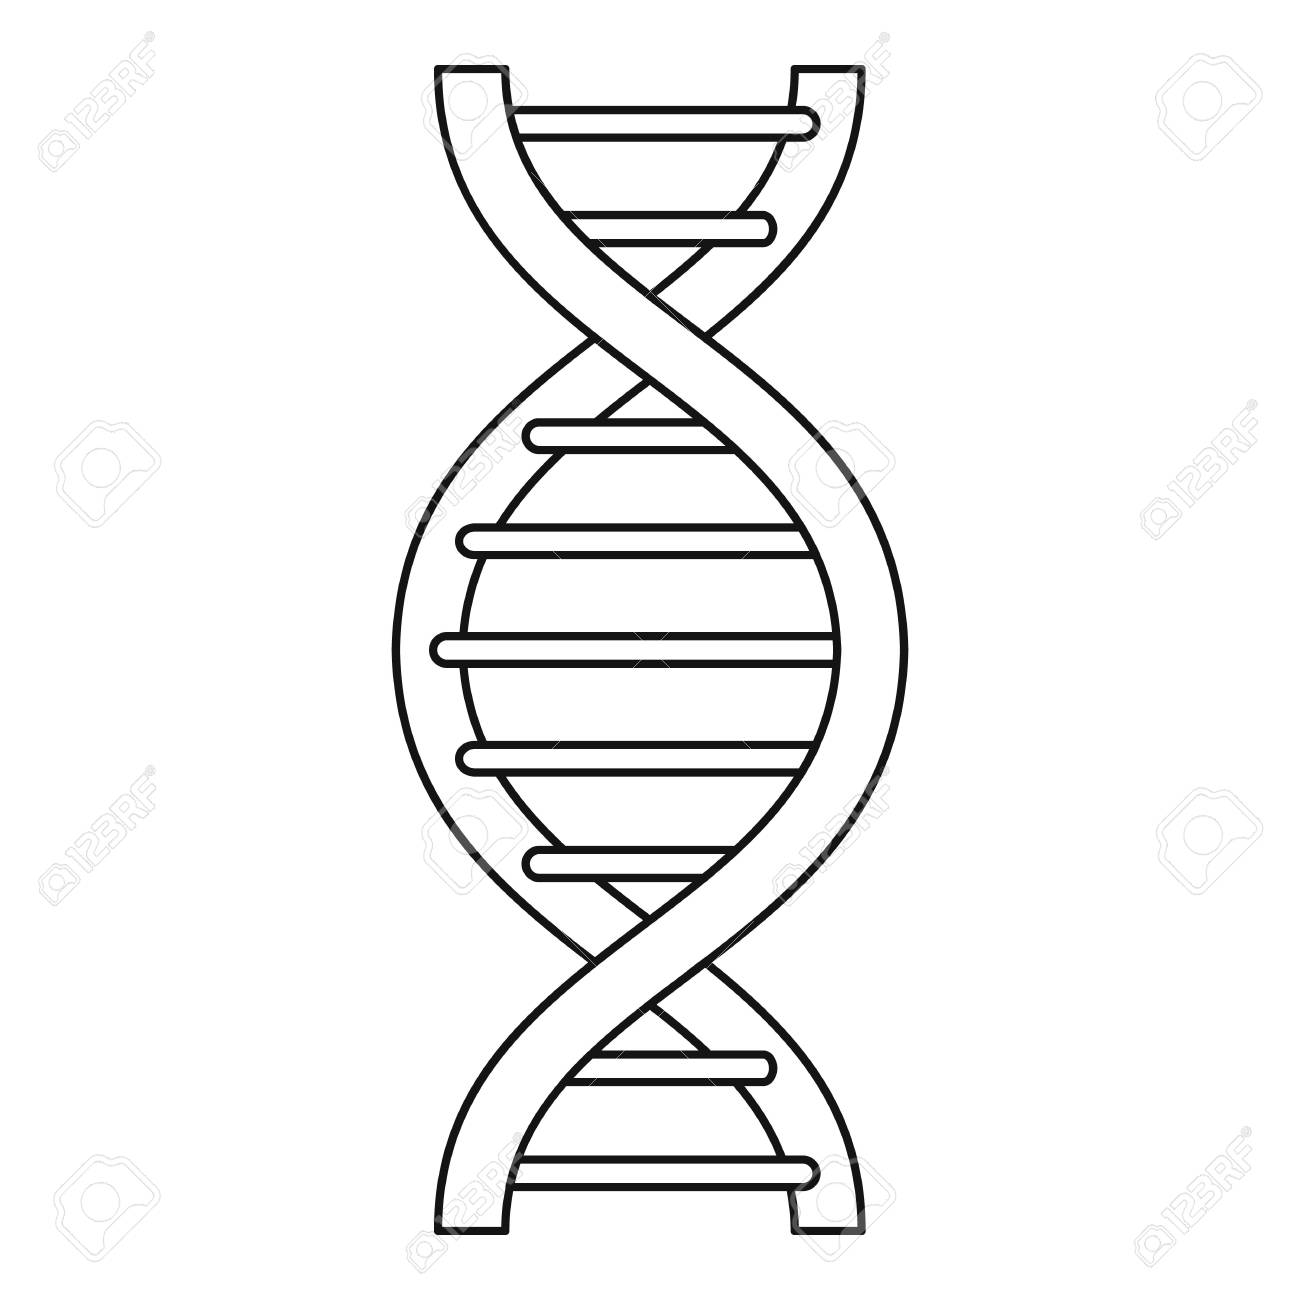 DNA strand icon, outline style.